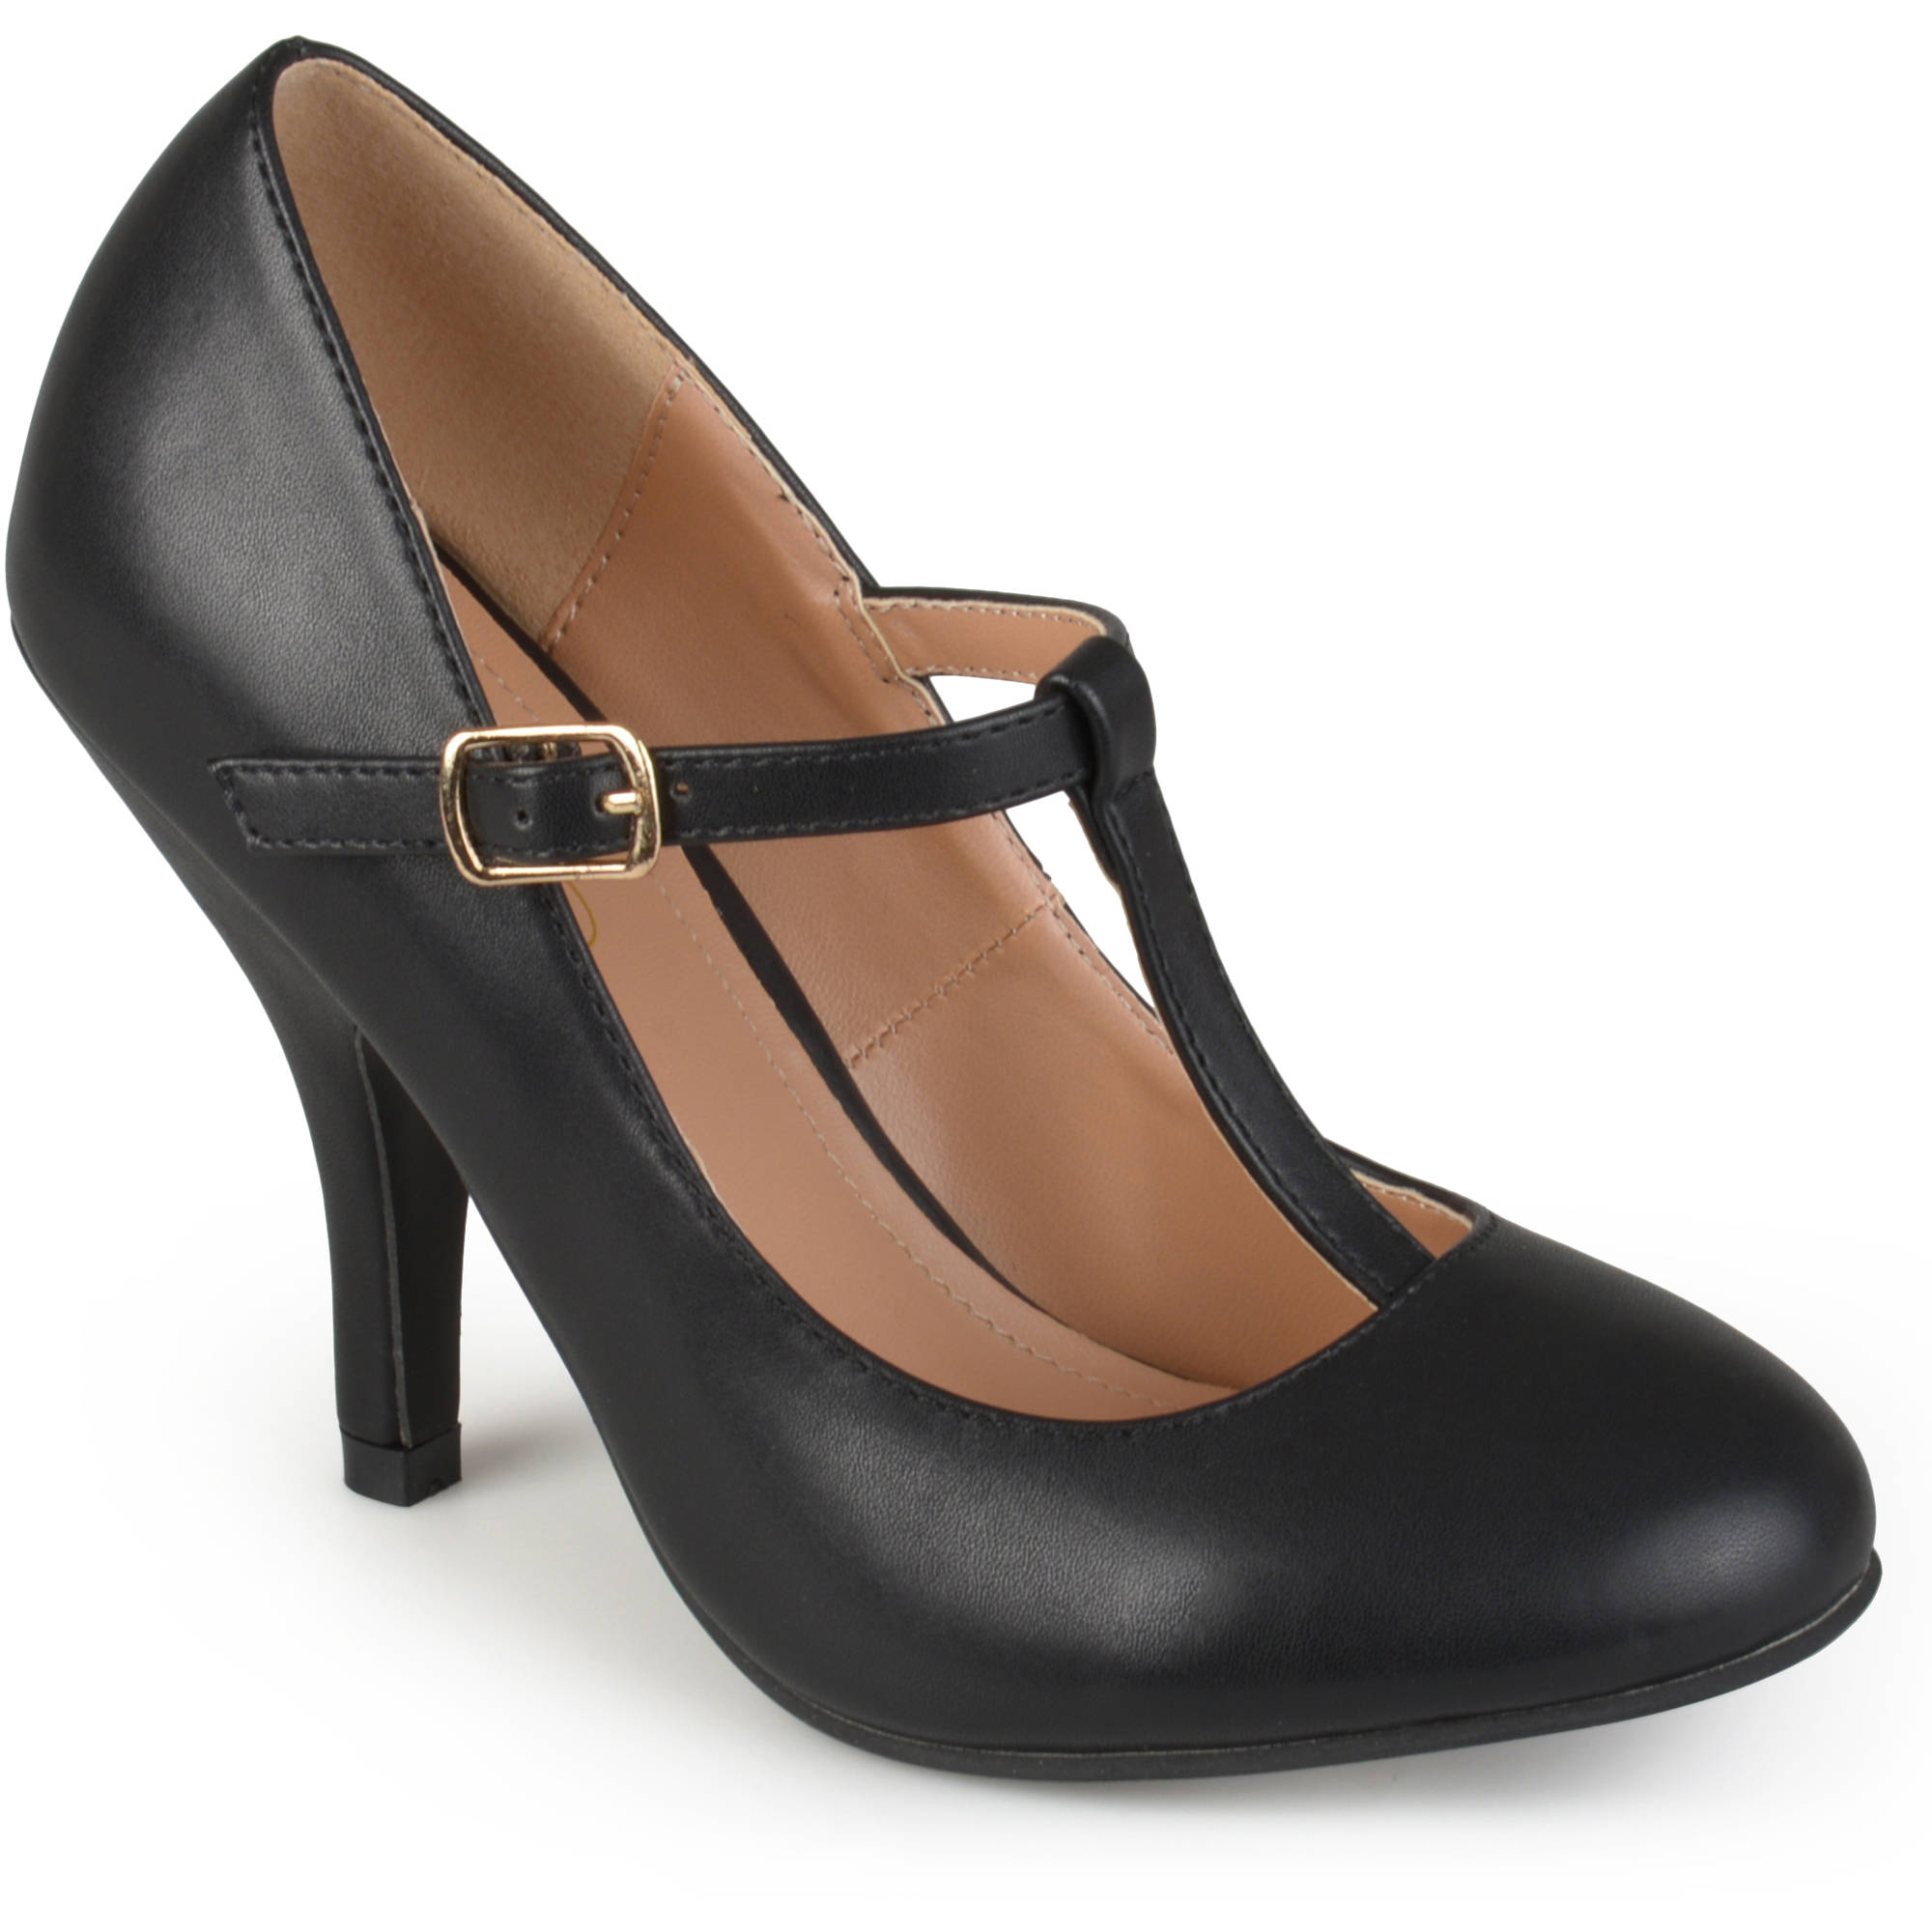 Brinley Co. Women's T-strap Matte Finish Pumps